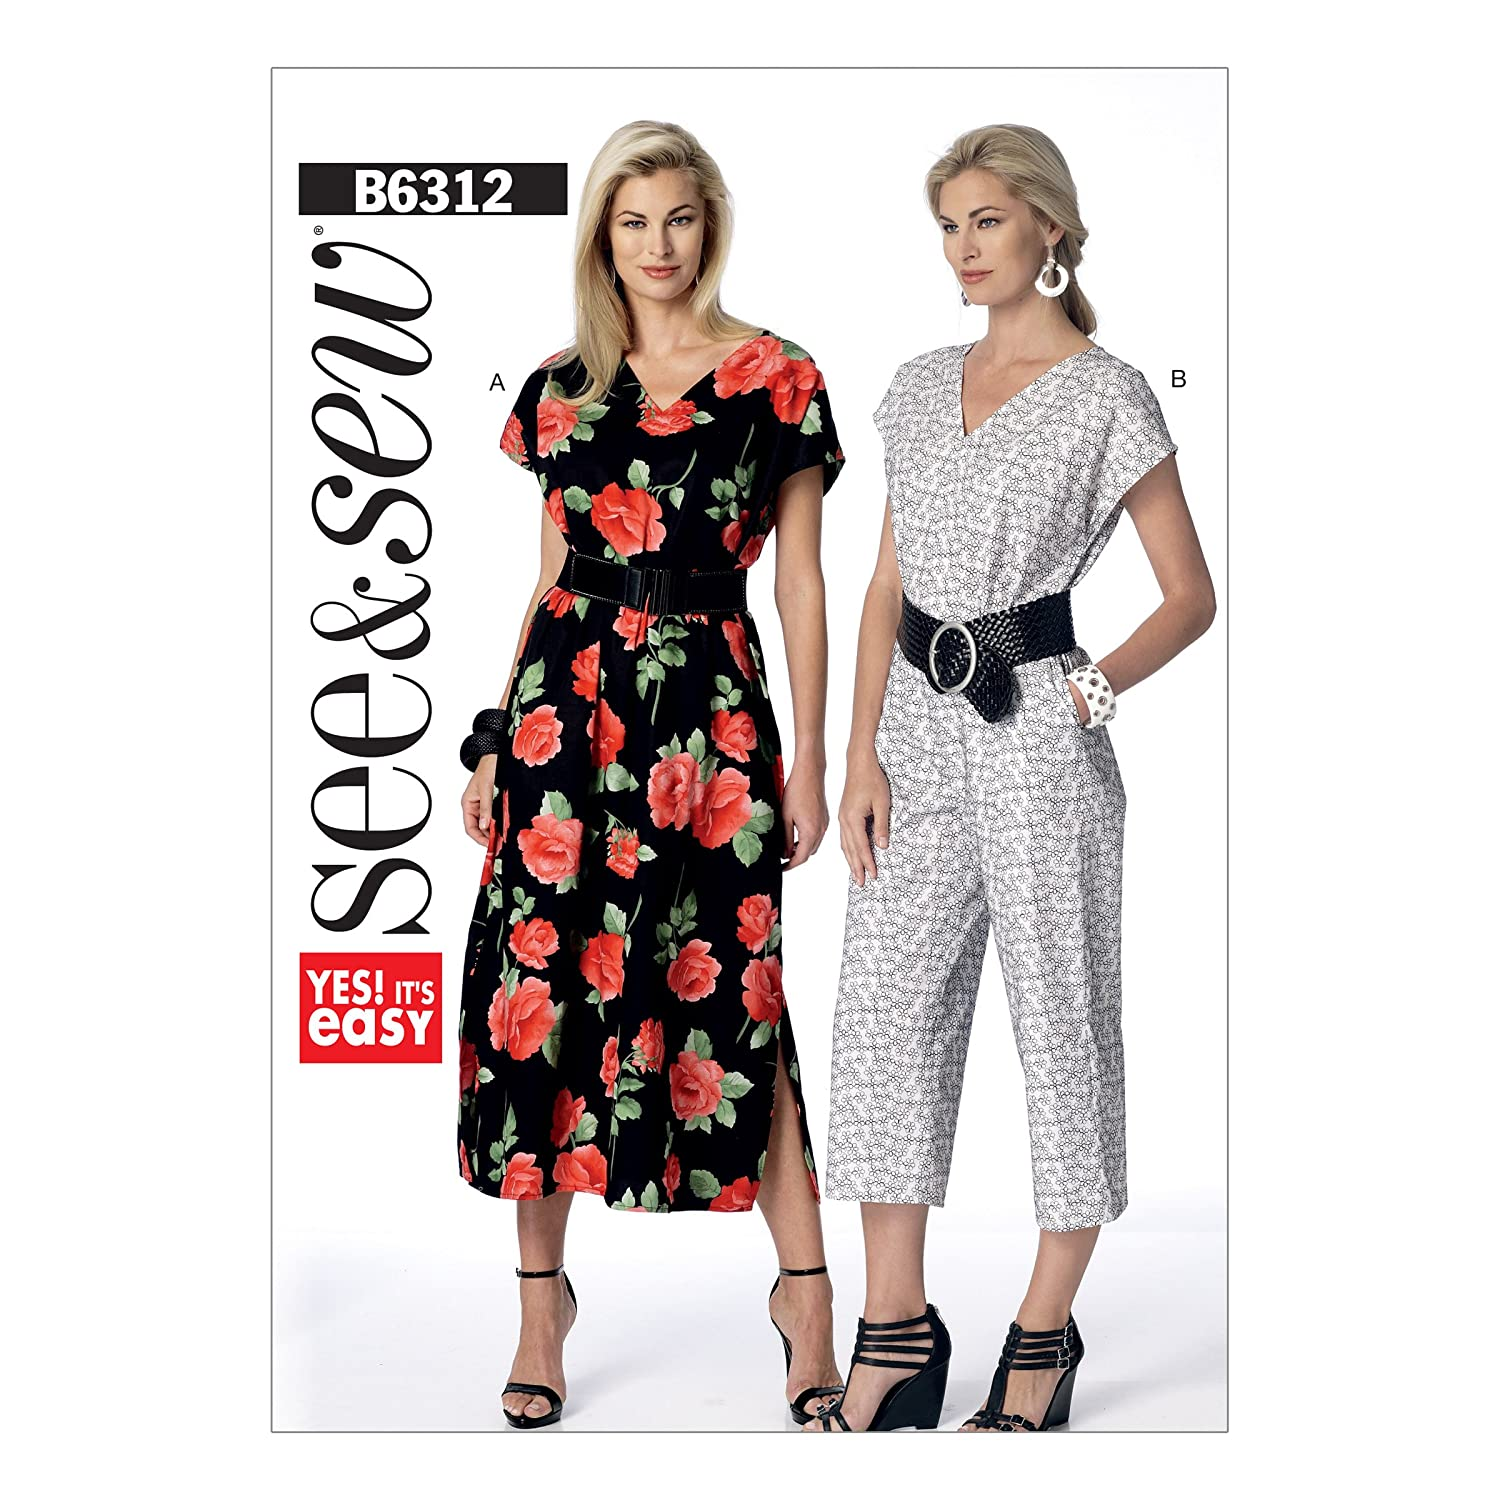 d64dcd2a5c Butterick Pattern 6312 A Misses Dress and Jumpsuit Sewing Pattern, Sizes  X-Small - 2X-Large: Amazon.co.uk: Kitchen & Home